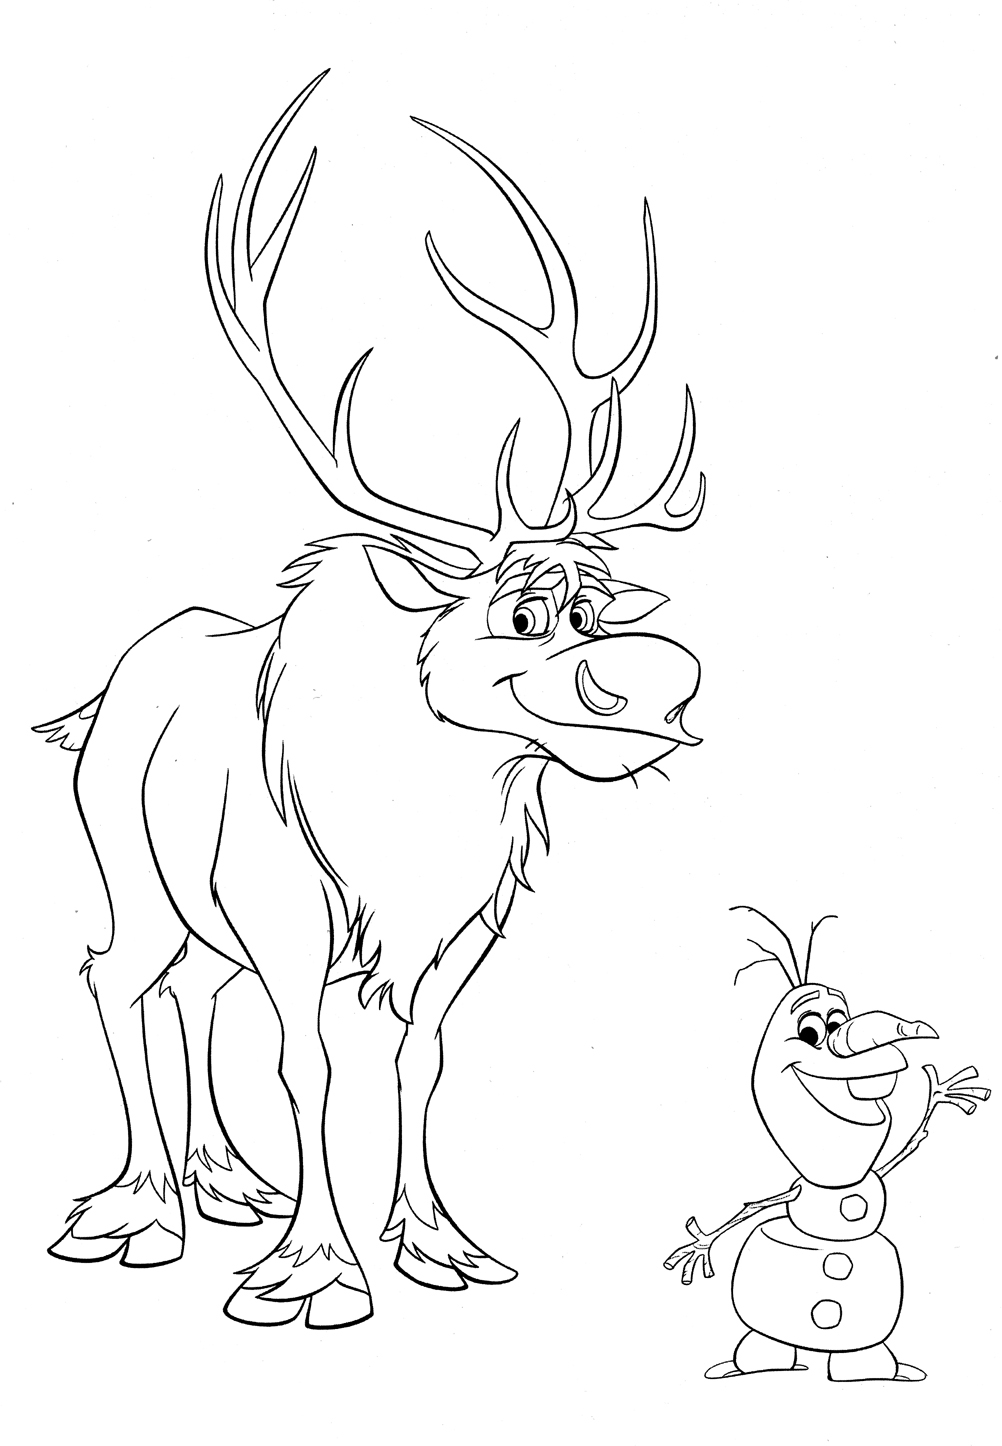 Coloring Pages Frozen Disney : Free coloring pages of olaf and wite